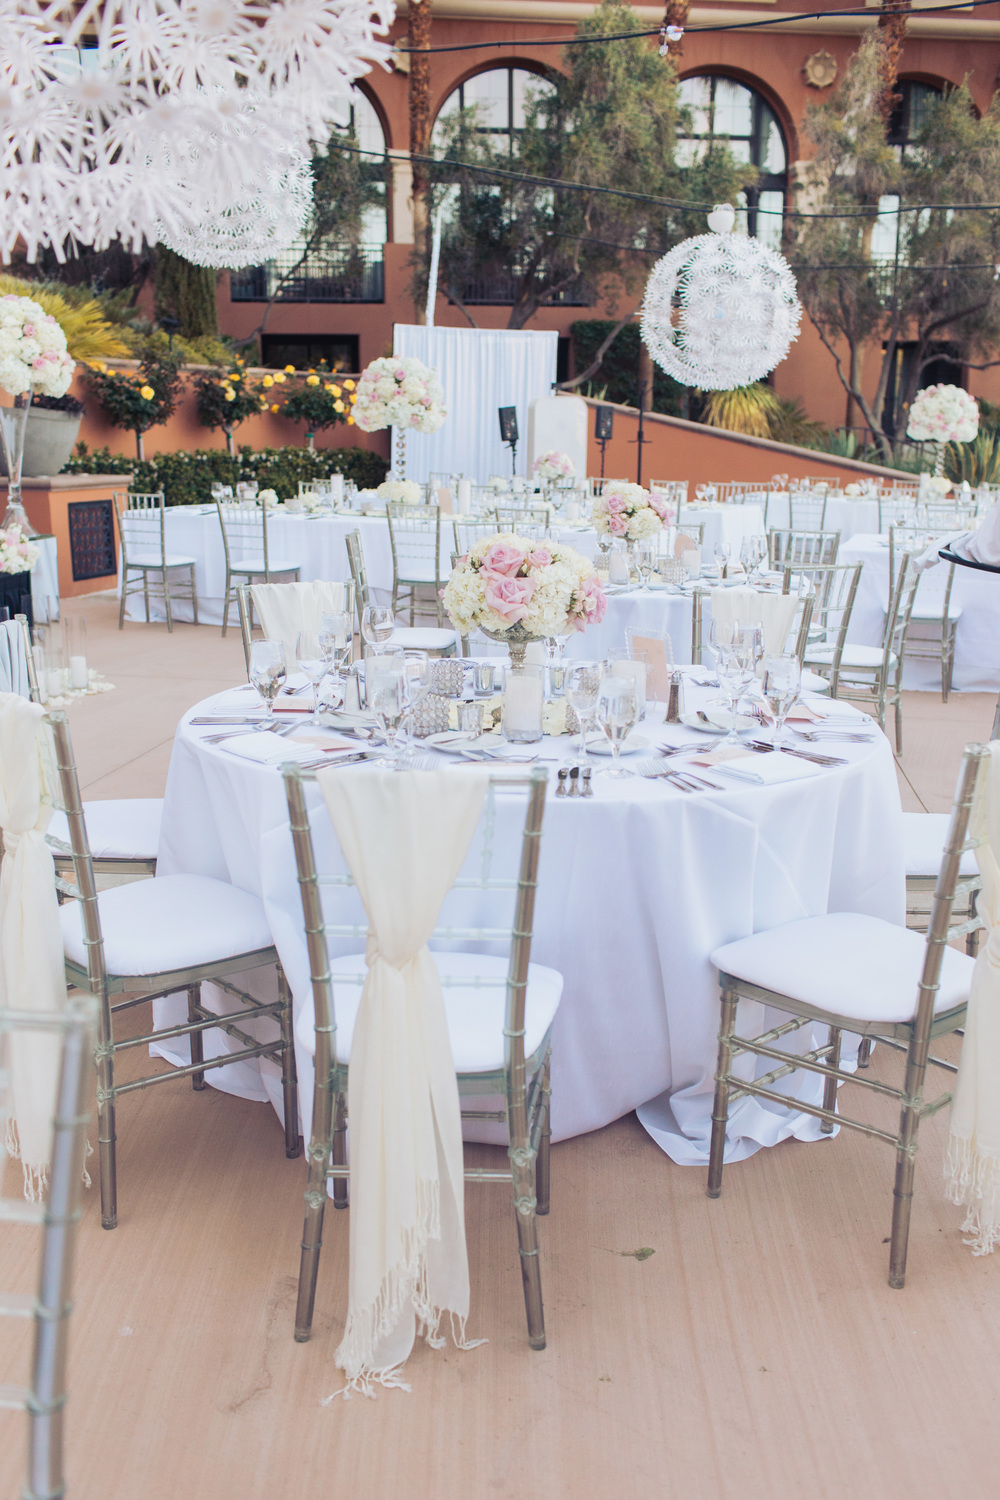 The bridal party sat at special, dedicated round tables dressed with White Duping linens topped with mirrored table runners, high and low white and blush centerpieces, and scattered candles.  Lucite Chiavari Chairs with ivory cushions surrounded the tables, and pashminas were placed for the ladies if they felt a chill.   Las Vegas Wedding Planner Andrea Eppolito  |  Wedding at Lake Las Vegas  | White and Blu  sh and Grey Wedding